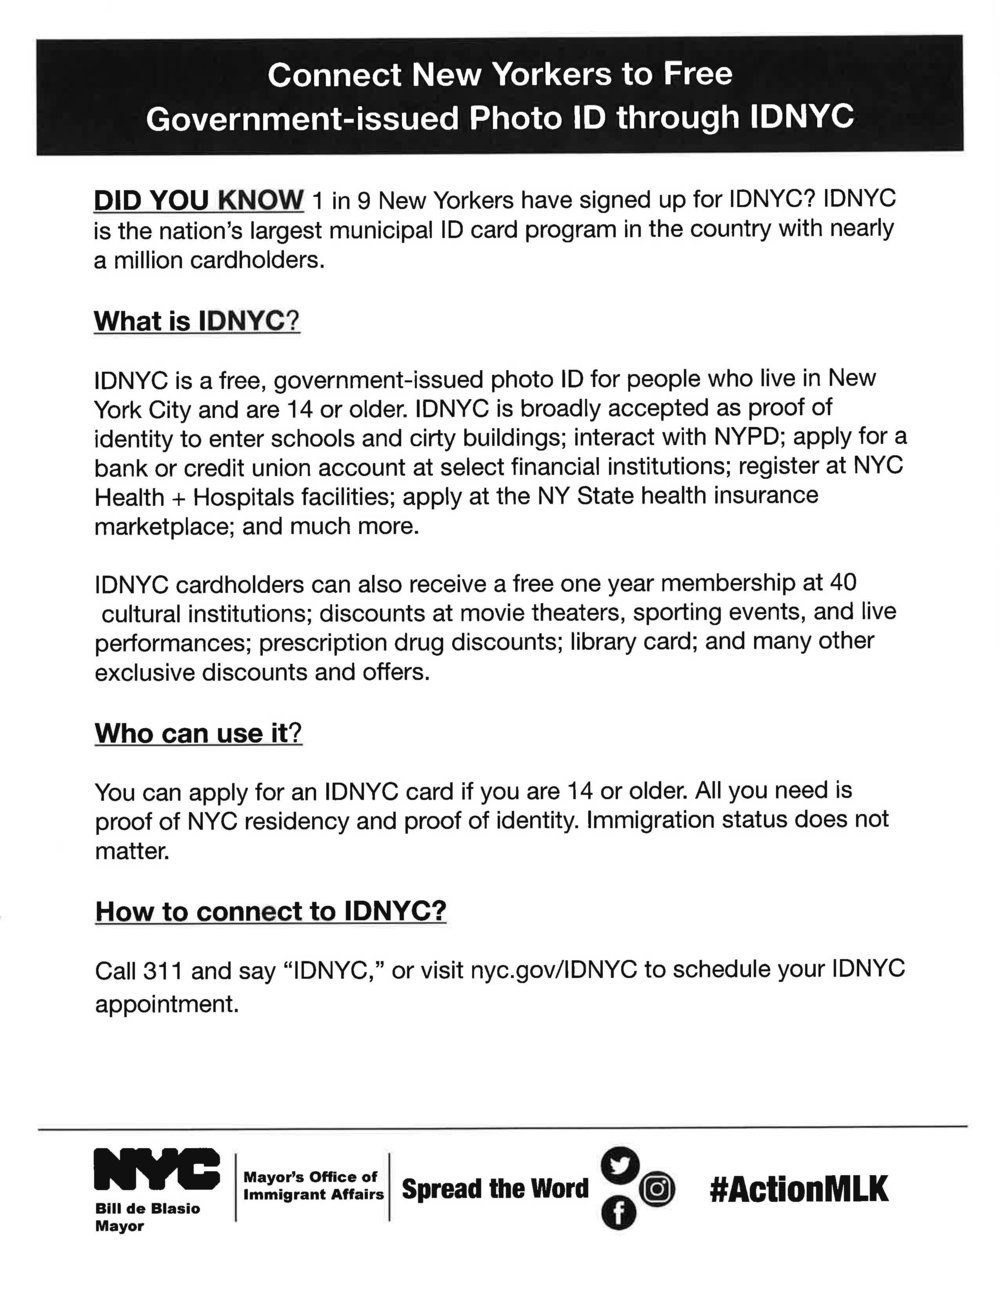 Connect New Yorkers to Free Government-issued Photo ID through IDNYC